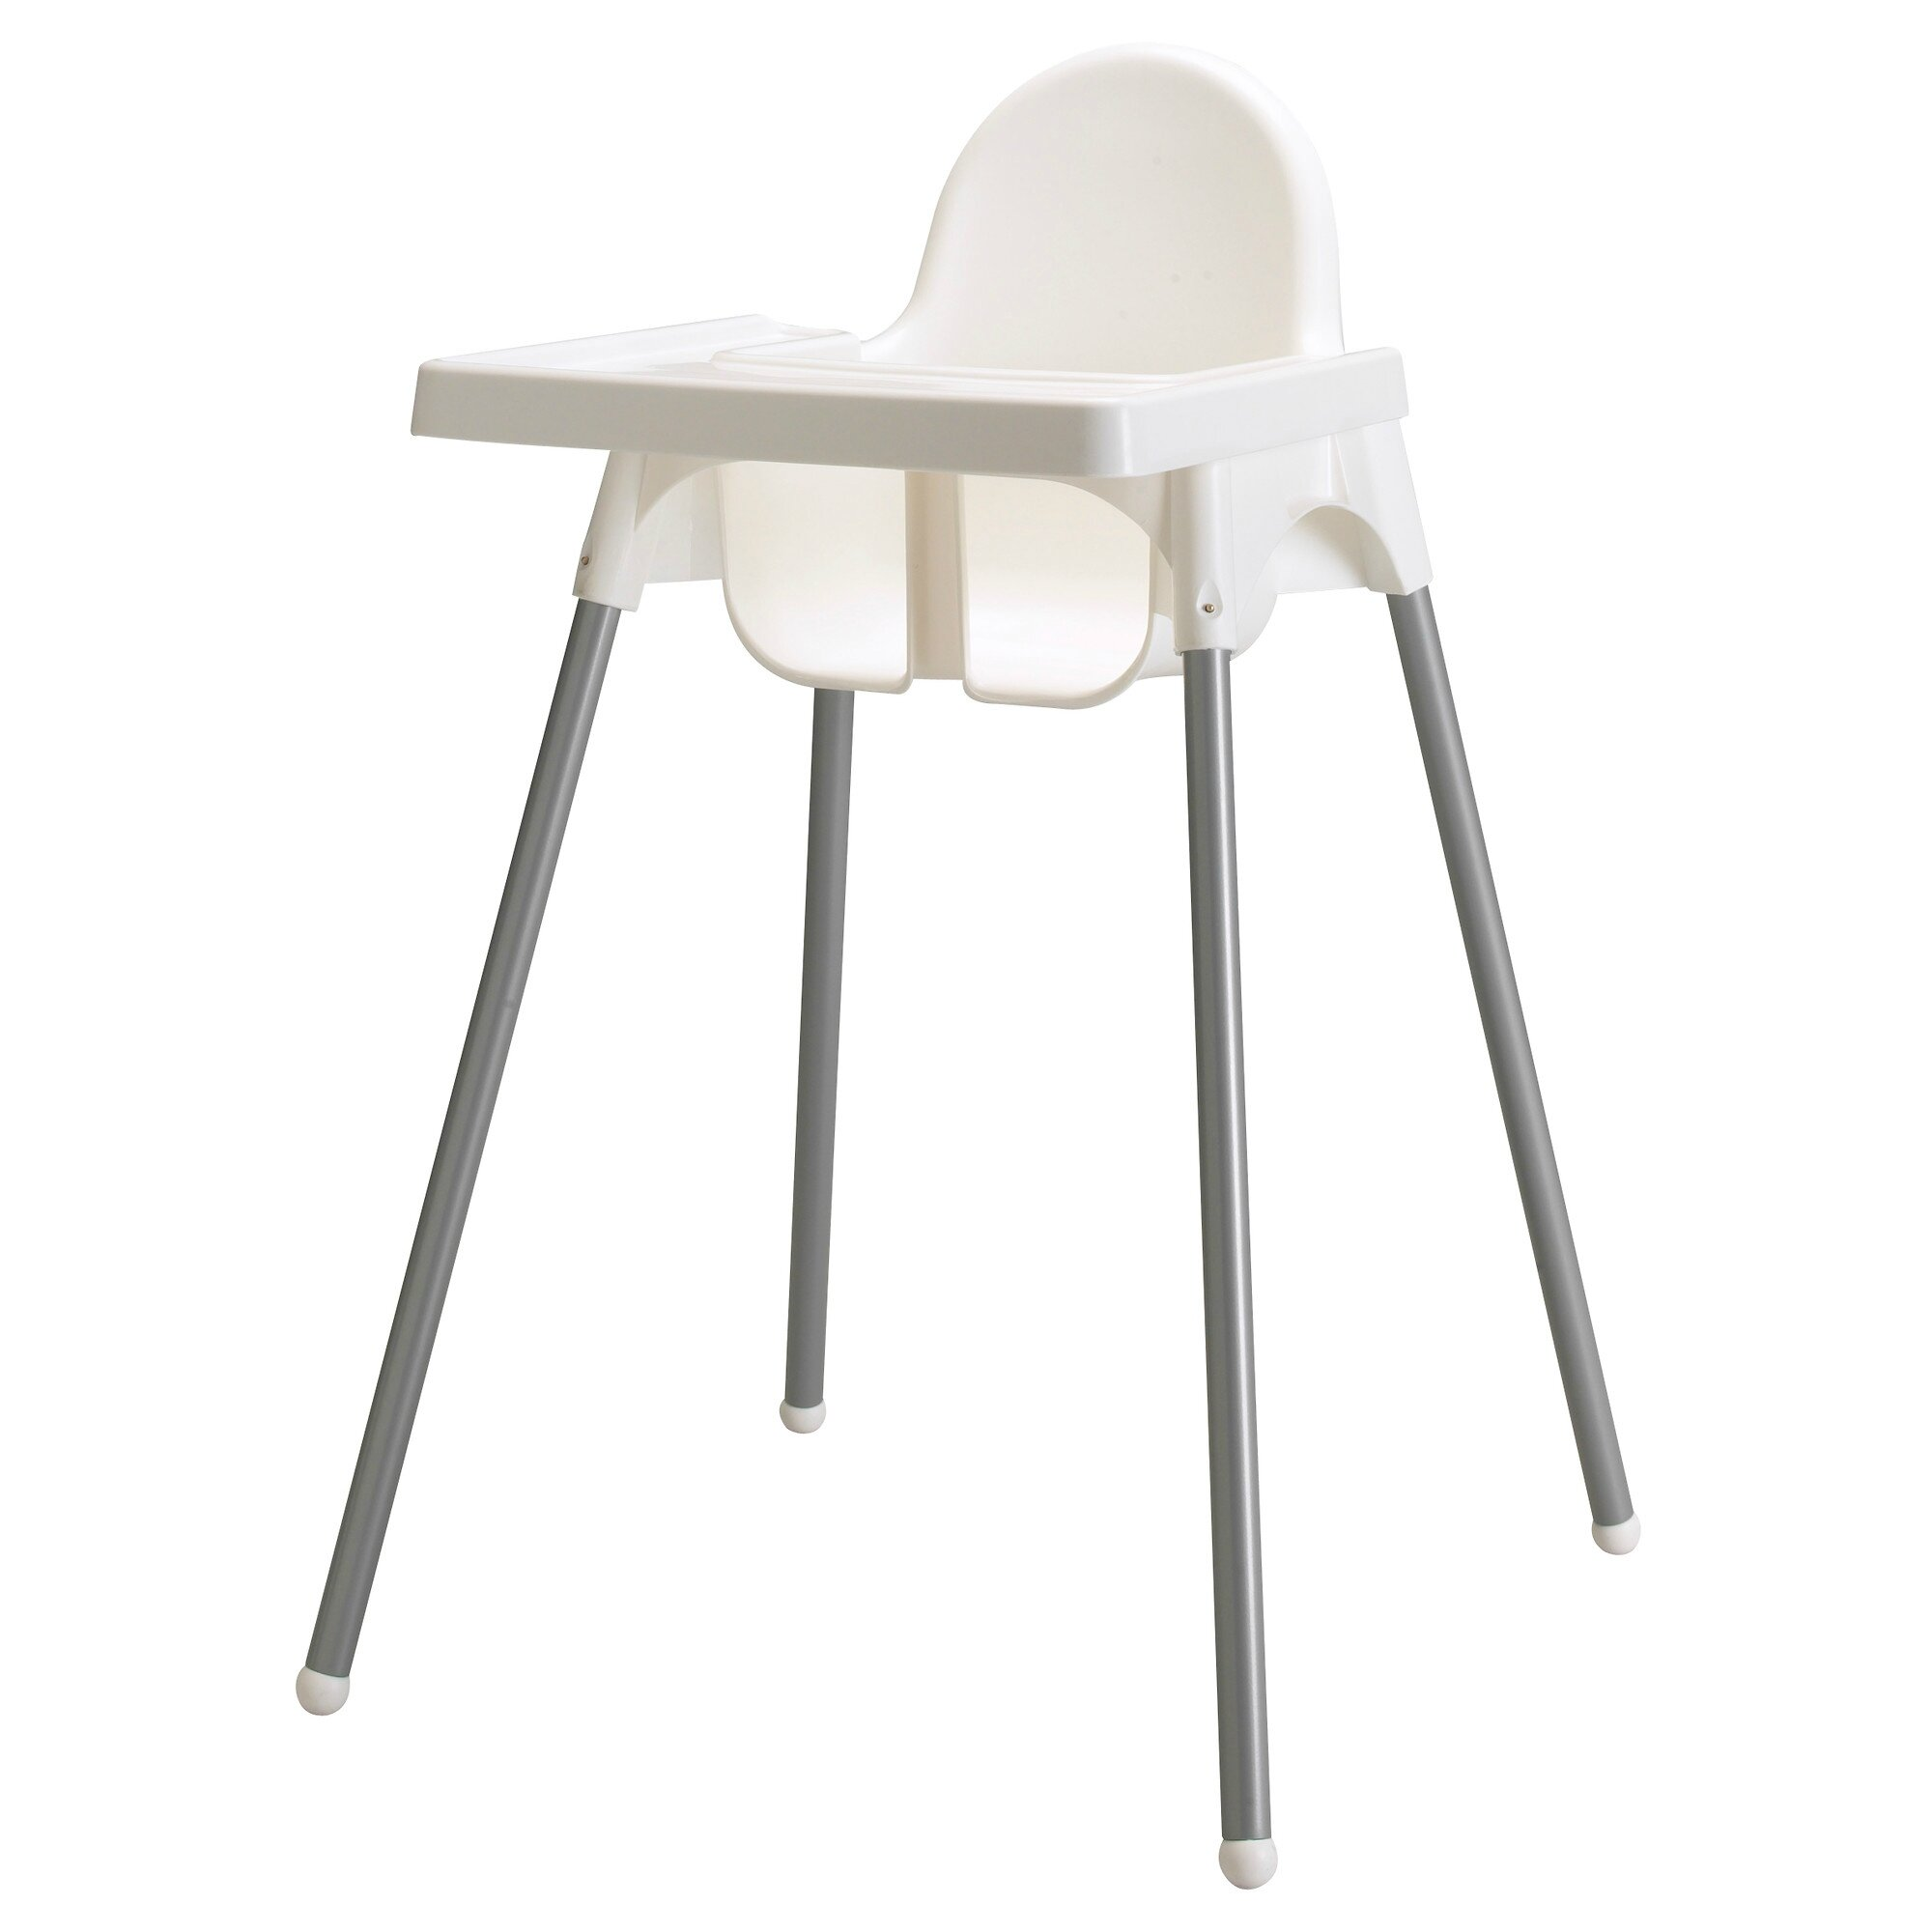 Chaise haute cuisine ikea estelle low legs to go with diy for Chaise haute design cuisine